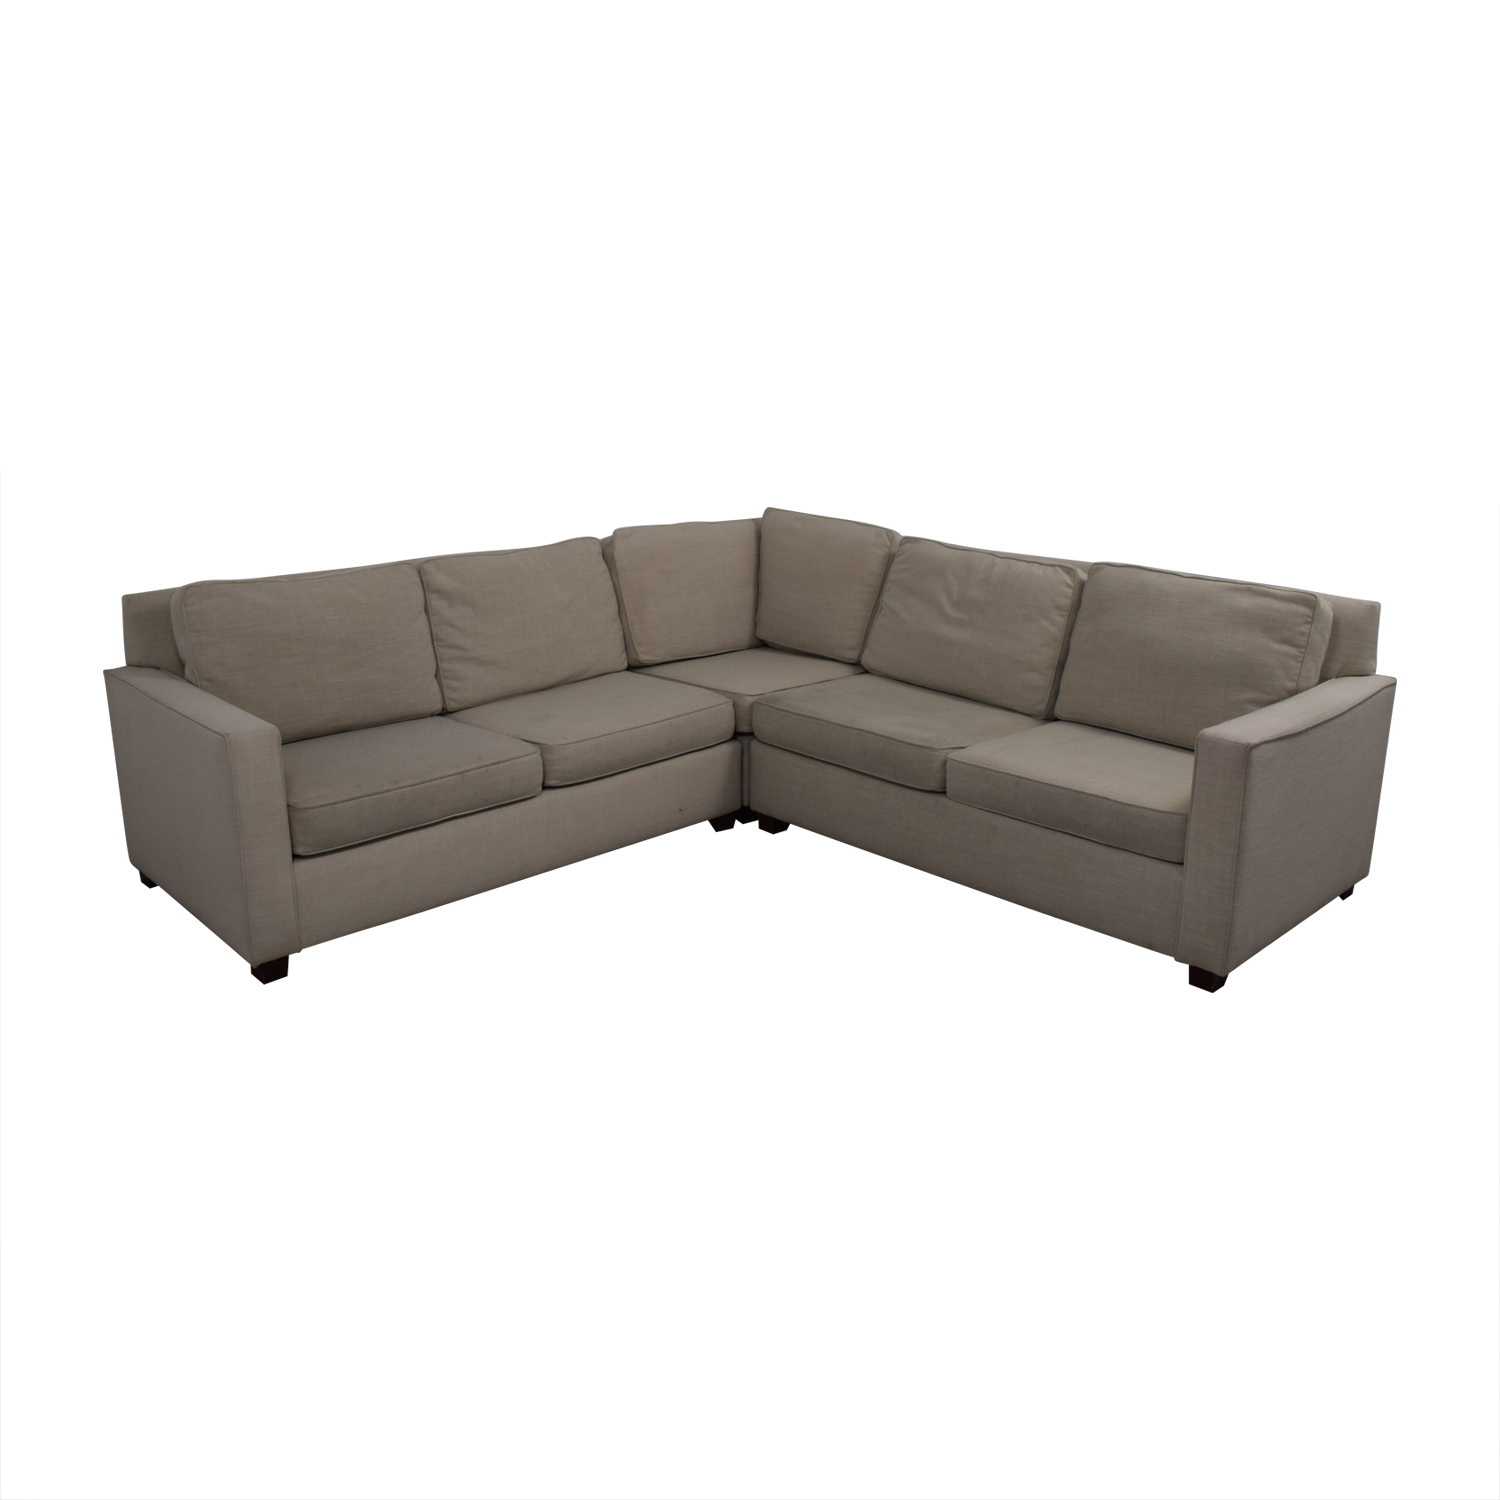 West Elm West Elm Henry Beige L-Shaped Sectional dimensions